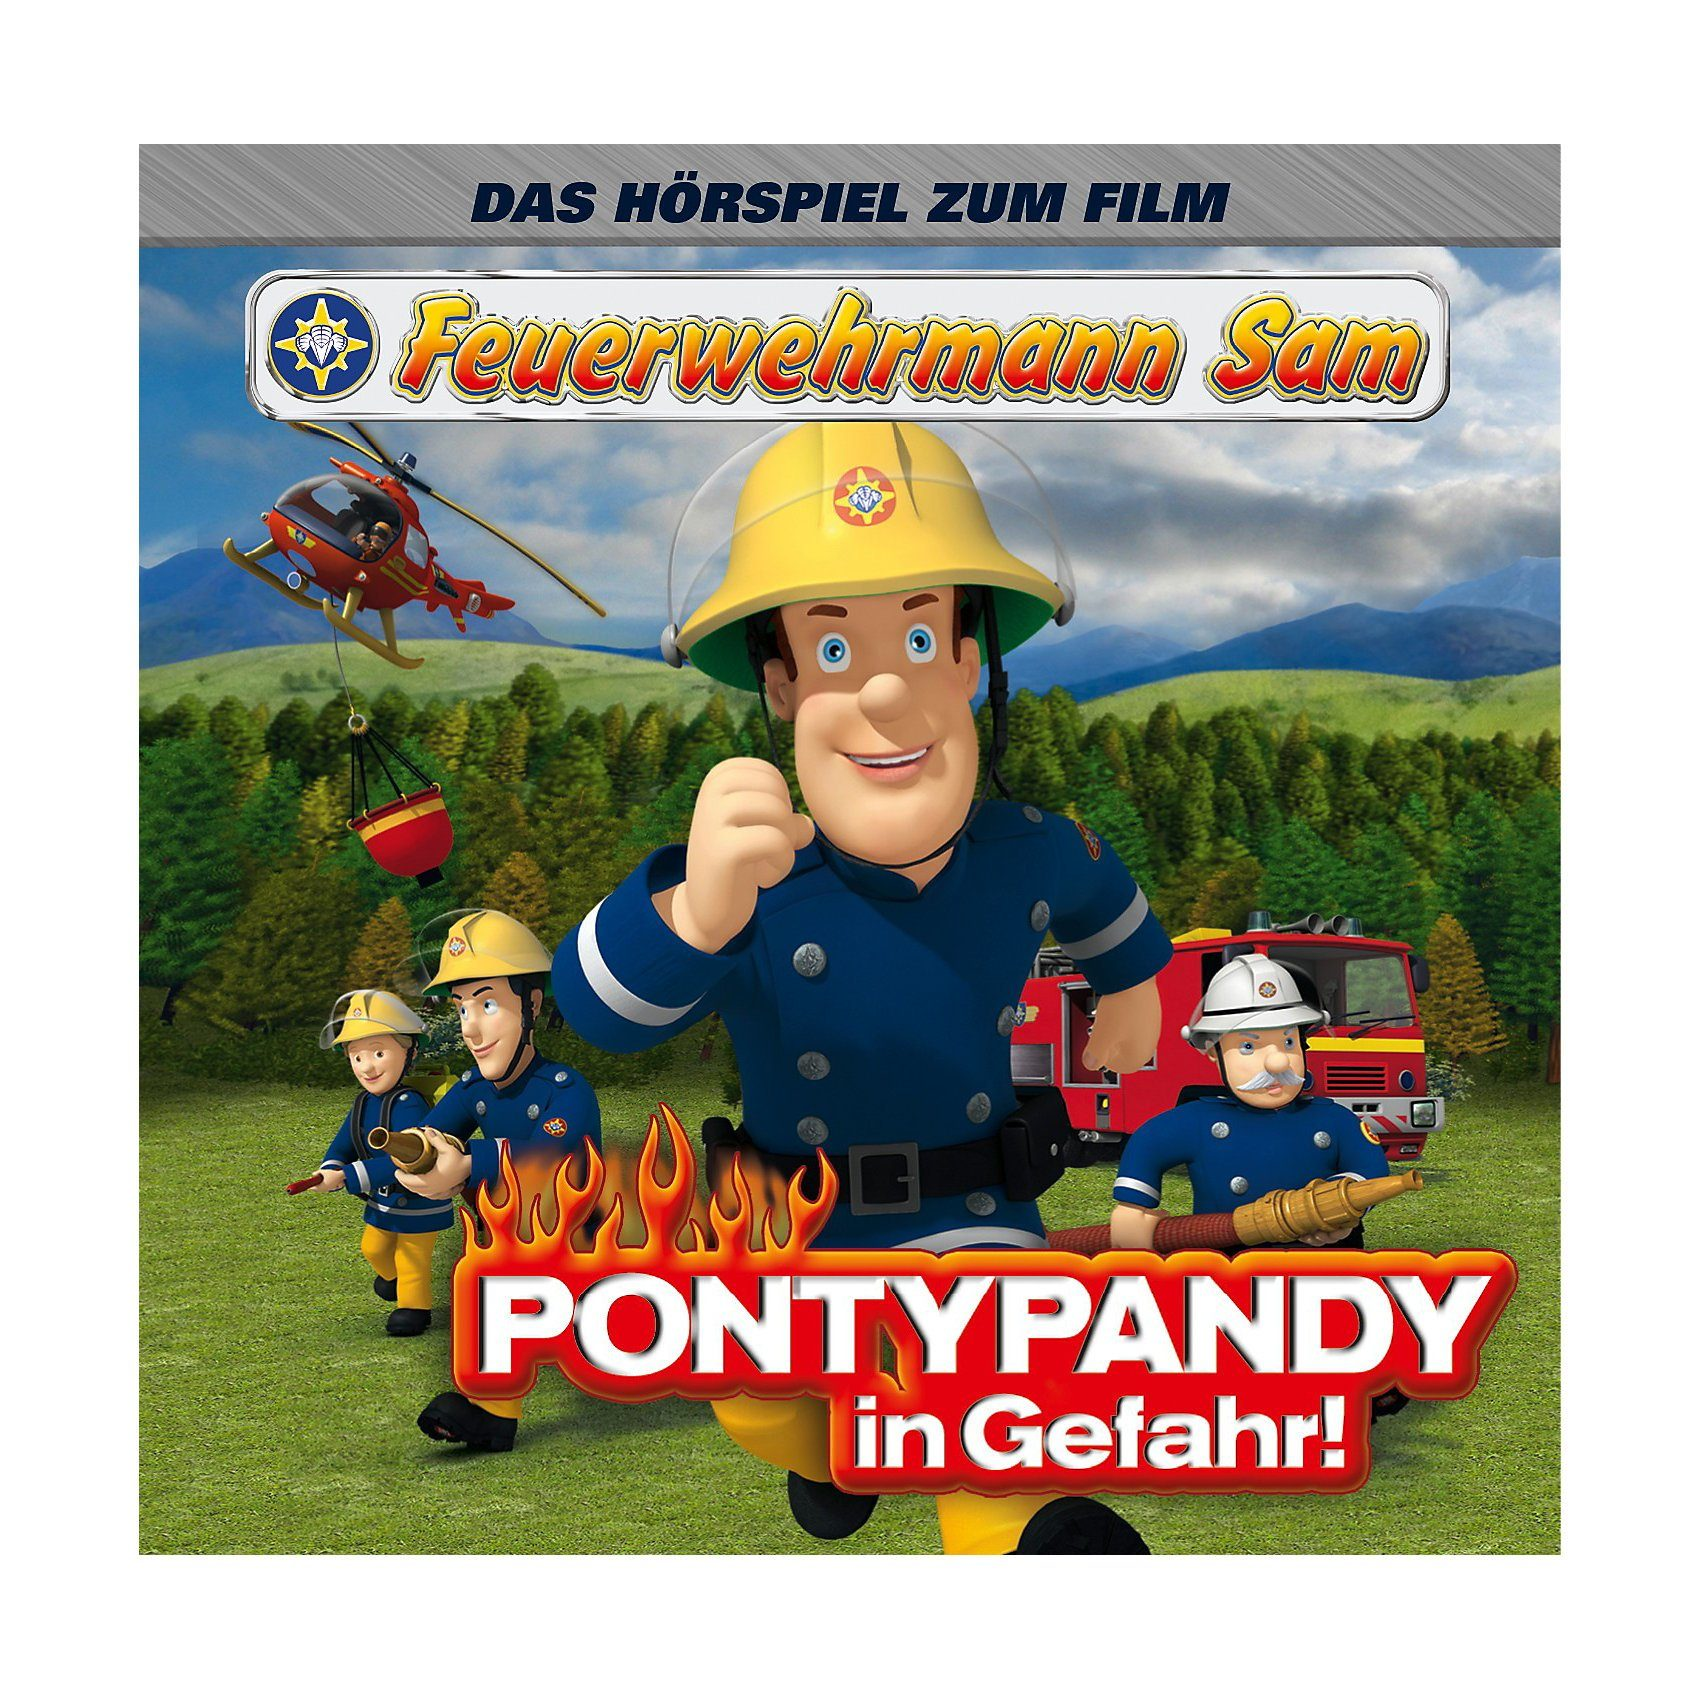 Just Bridge Entertainment CD Feuerwehrmann Sam - Pontypandy in Gefahr!